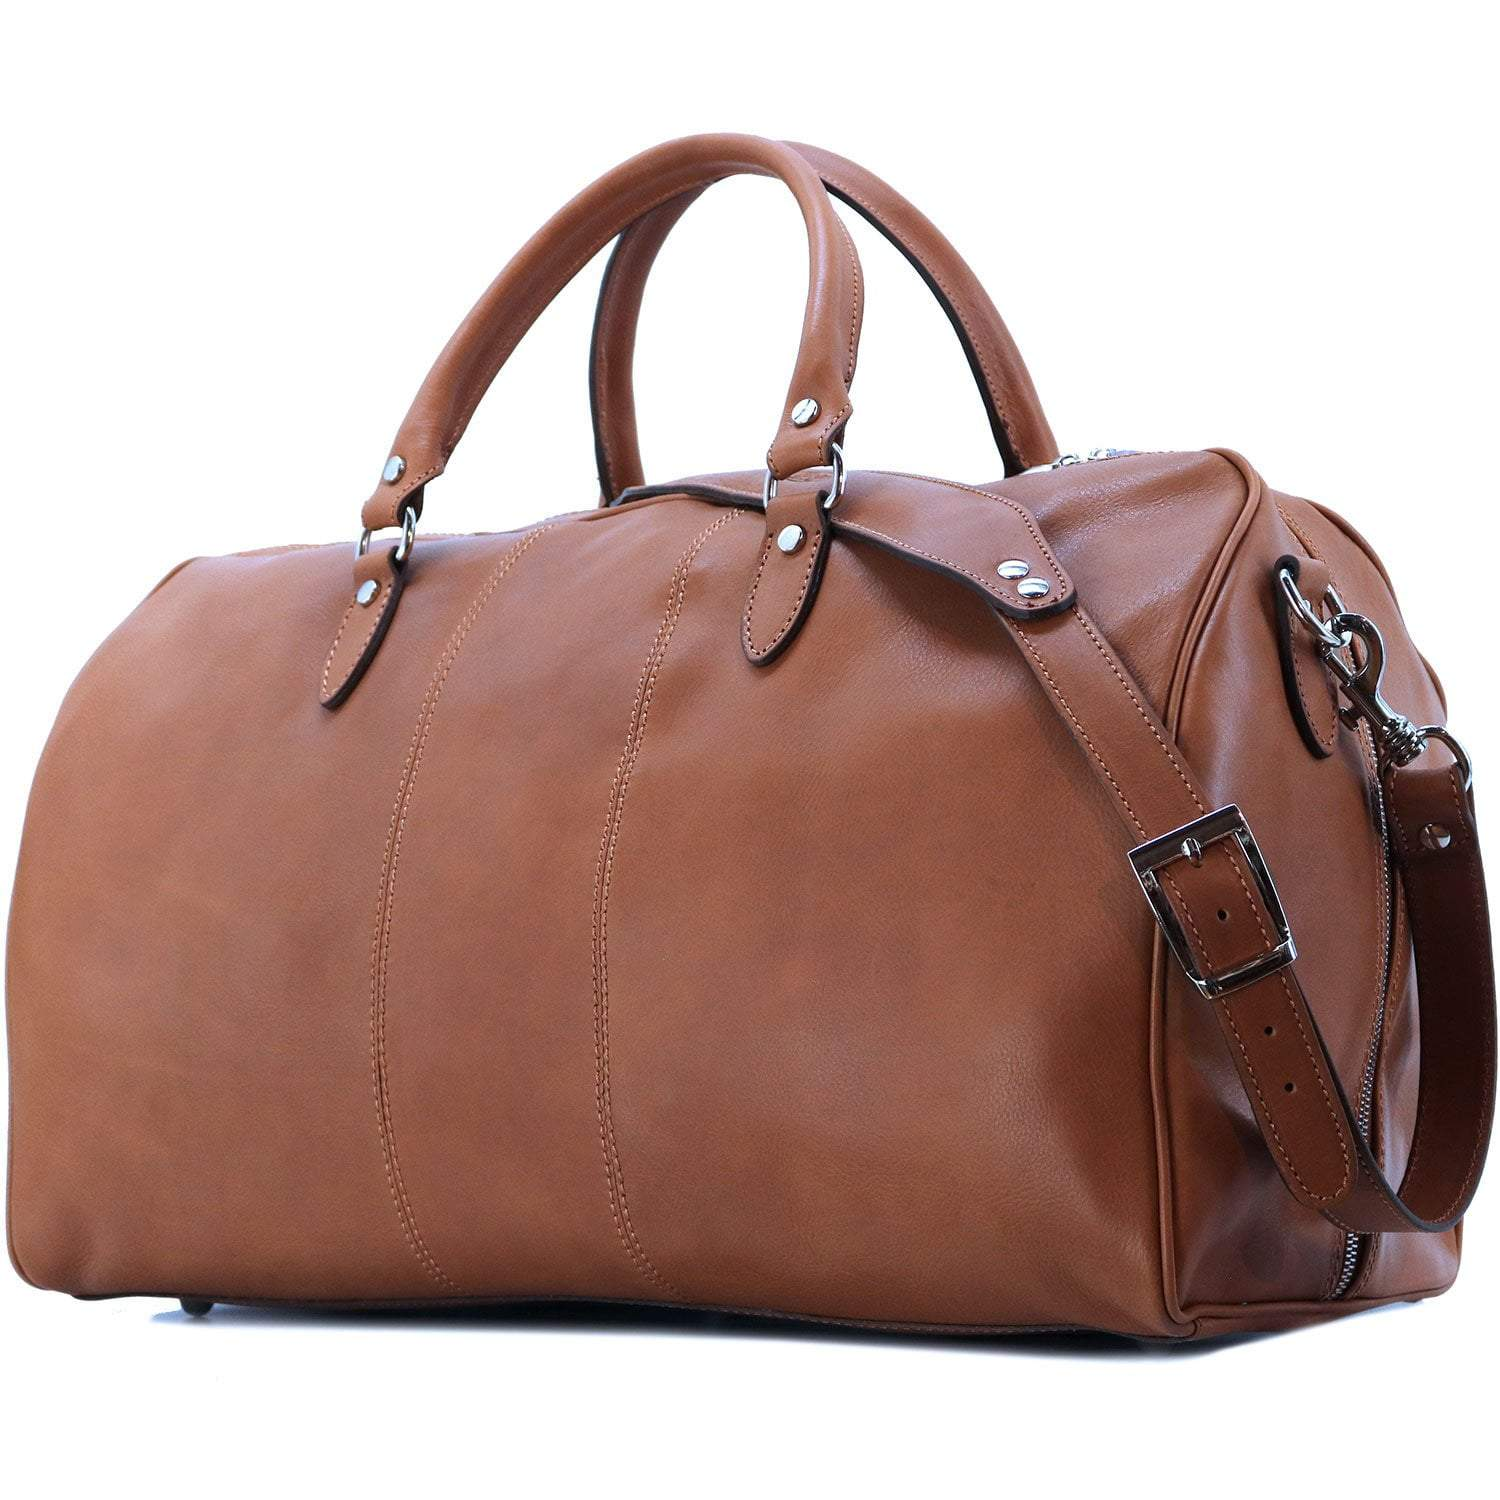 Floto Venezia Leather Travel Duffle Bag 2.0 - Olive (Honey) Brown